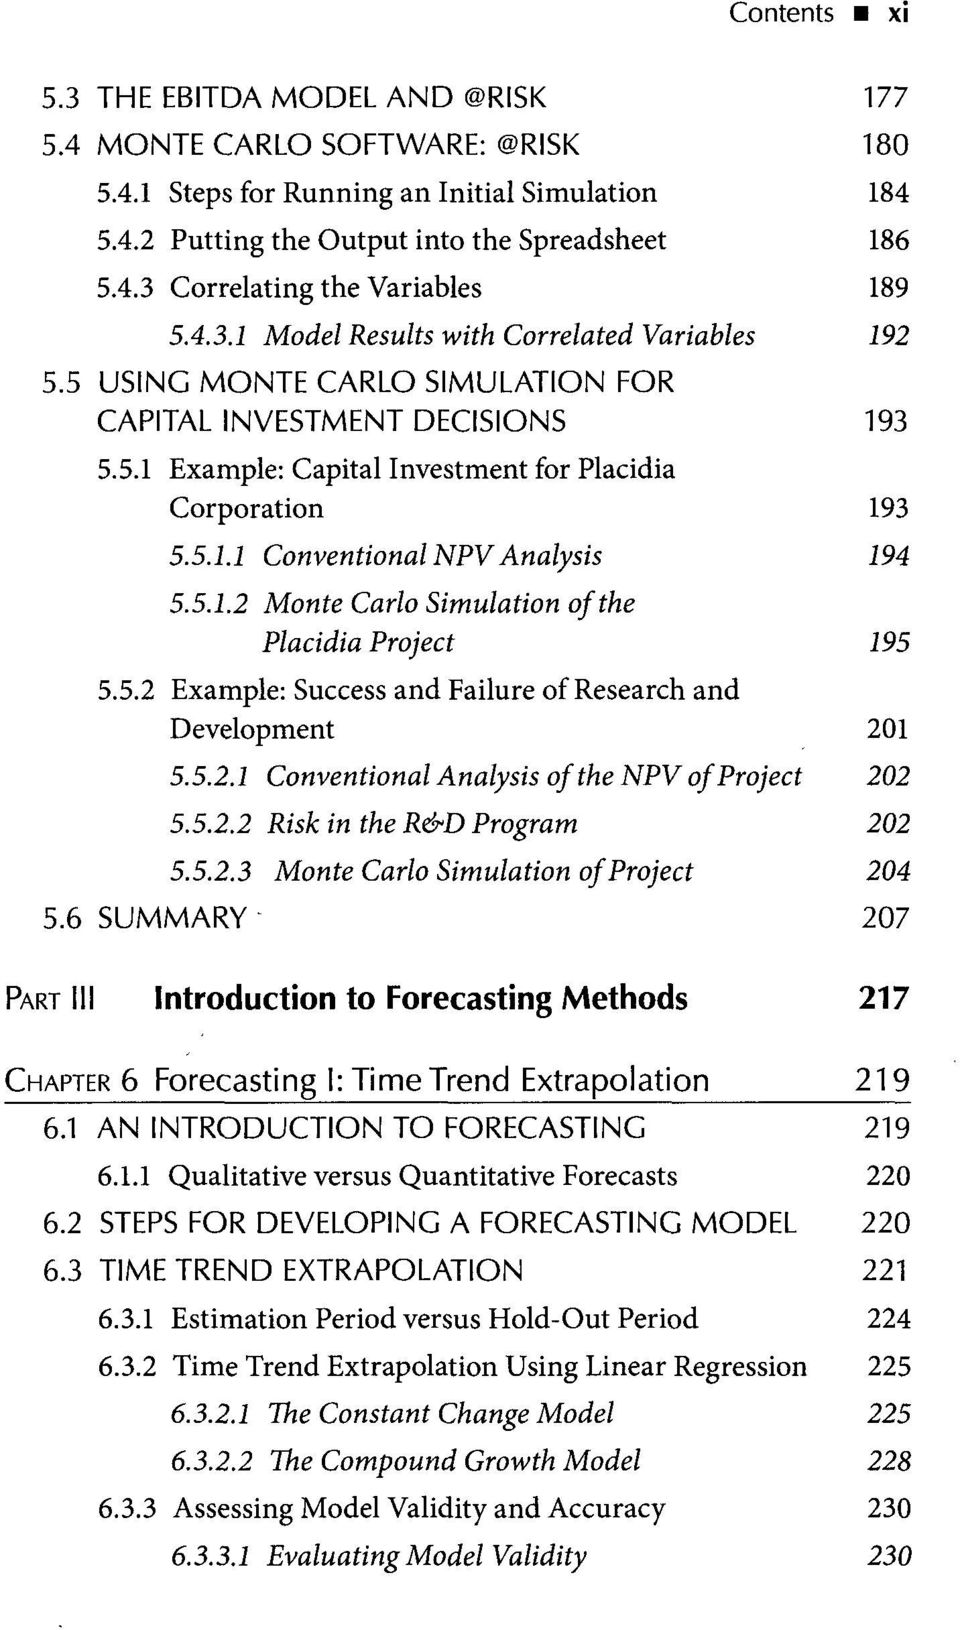 5.1.2 Monte Carlo Simulation of the Placidia Project 195 5.5.2 Example: Success and Failure of Research and Development 201 5.5.2.1 Conventional Analysis of the NPV of Project 202 5.5.2.2 Risk in the R&D Program 202 5.